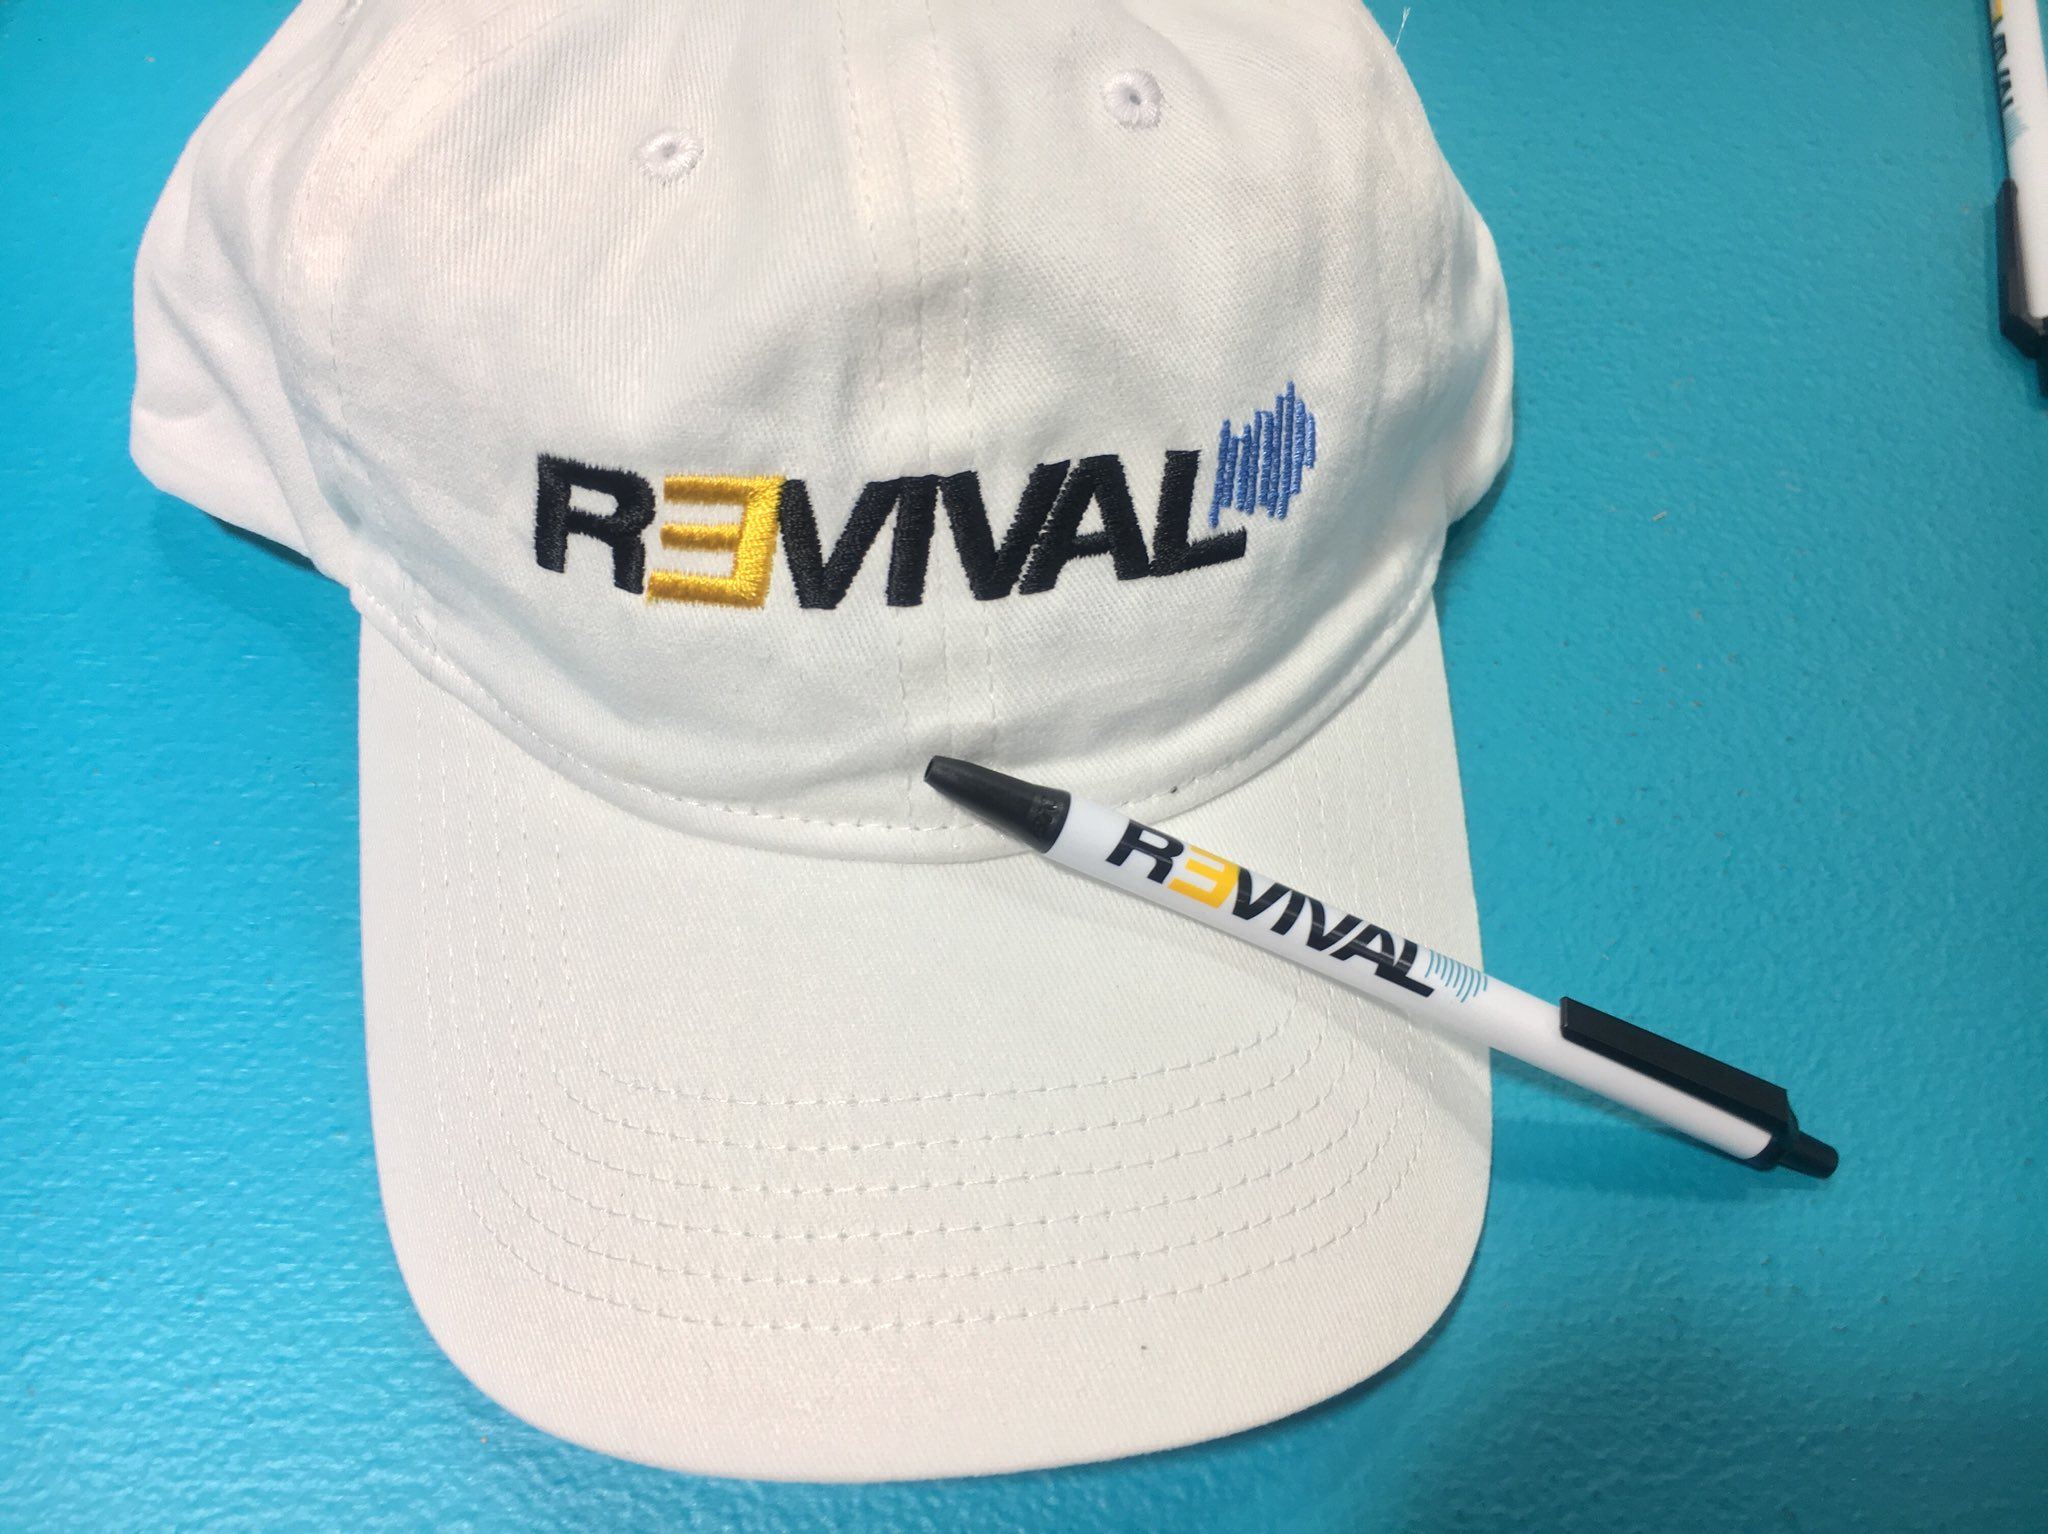 Eminem's stand of Revival is caught at ComplexCon 2017